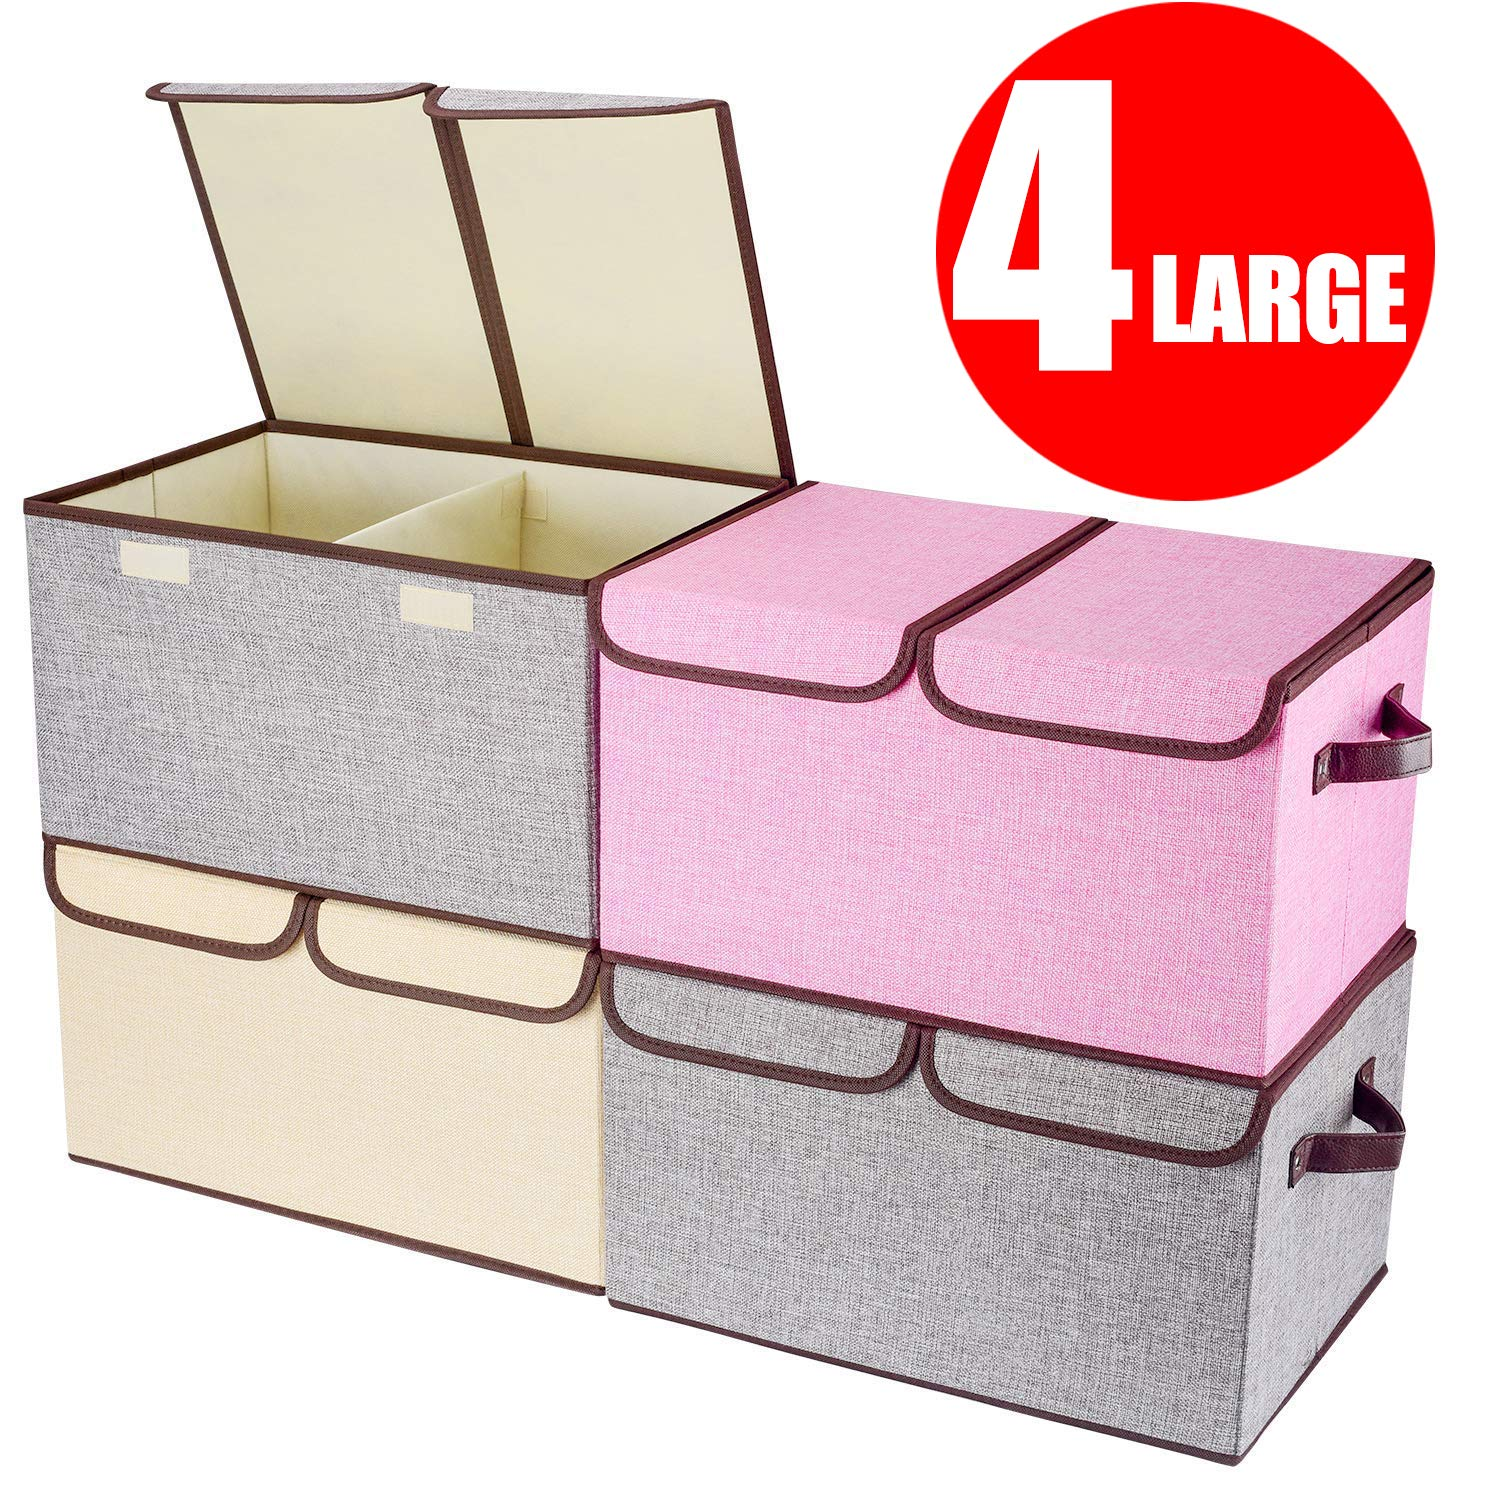 Larger Storage Cubes [4-Pack] Senbowe Linen Fabric Foldable Collapsible Storage Cube Bin Organizer Basket with Lid, Handles, Removable Divider For Home, Nursery, Closet - (17.7 x 11.8 x 9.8'') by senbowe